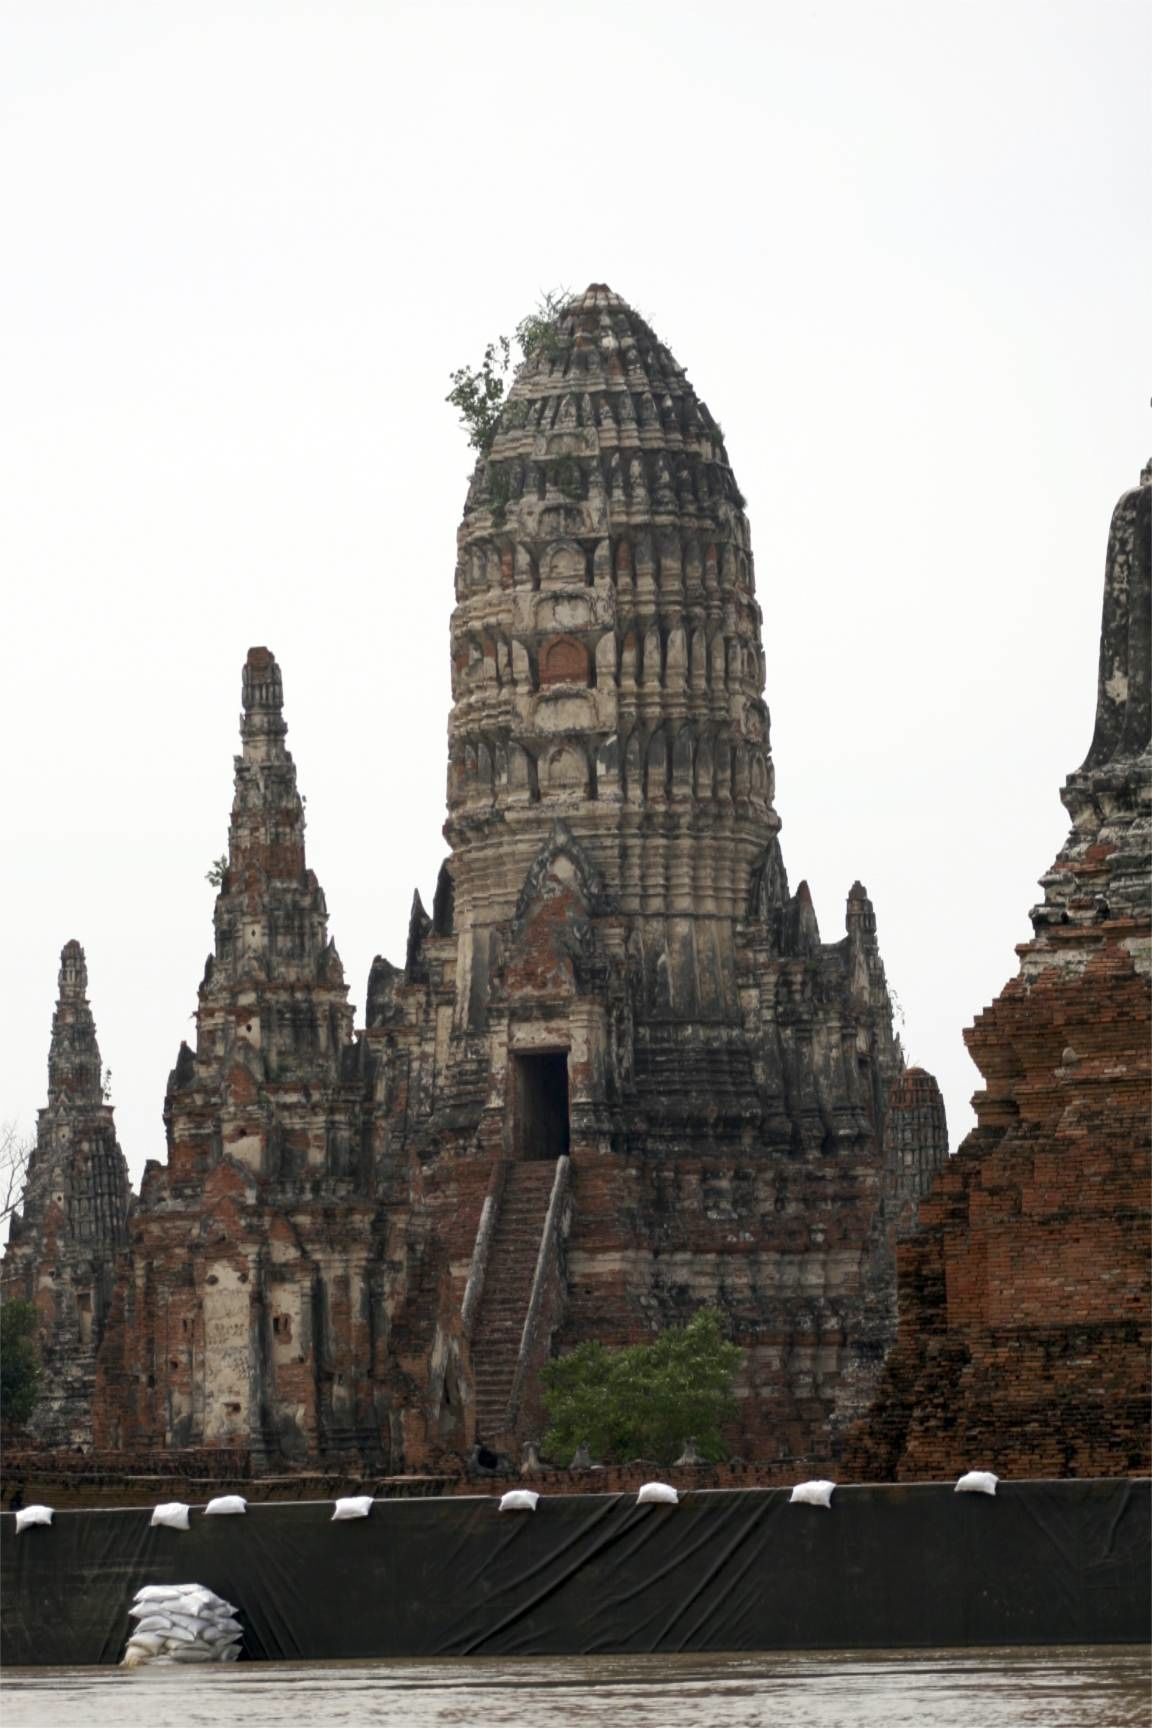 The Wats of Ayutthaya